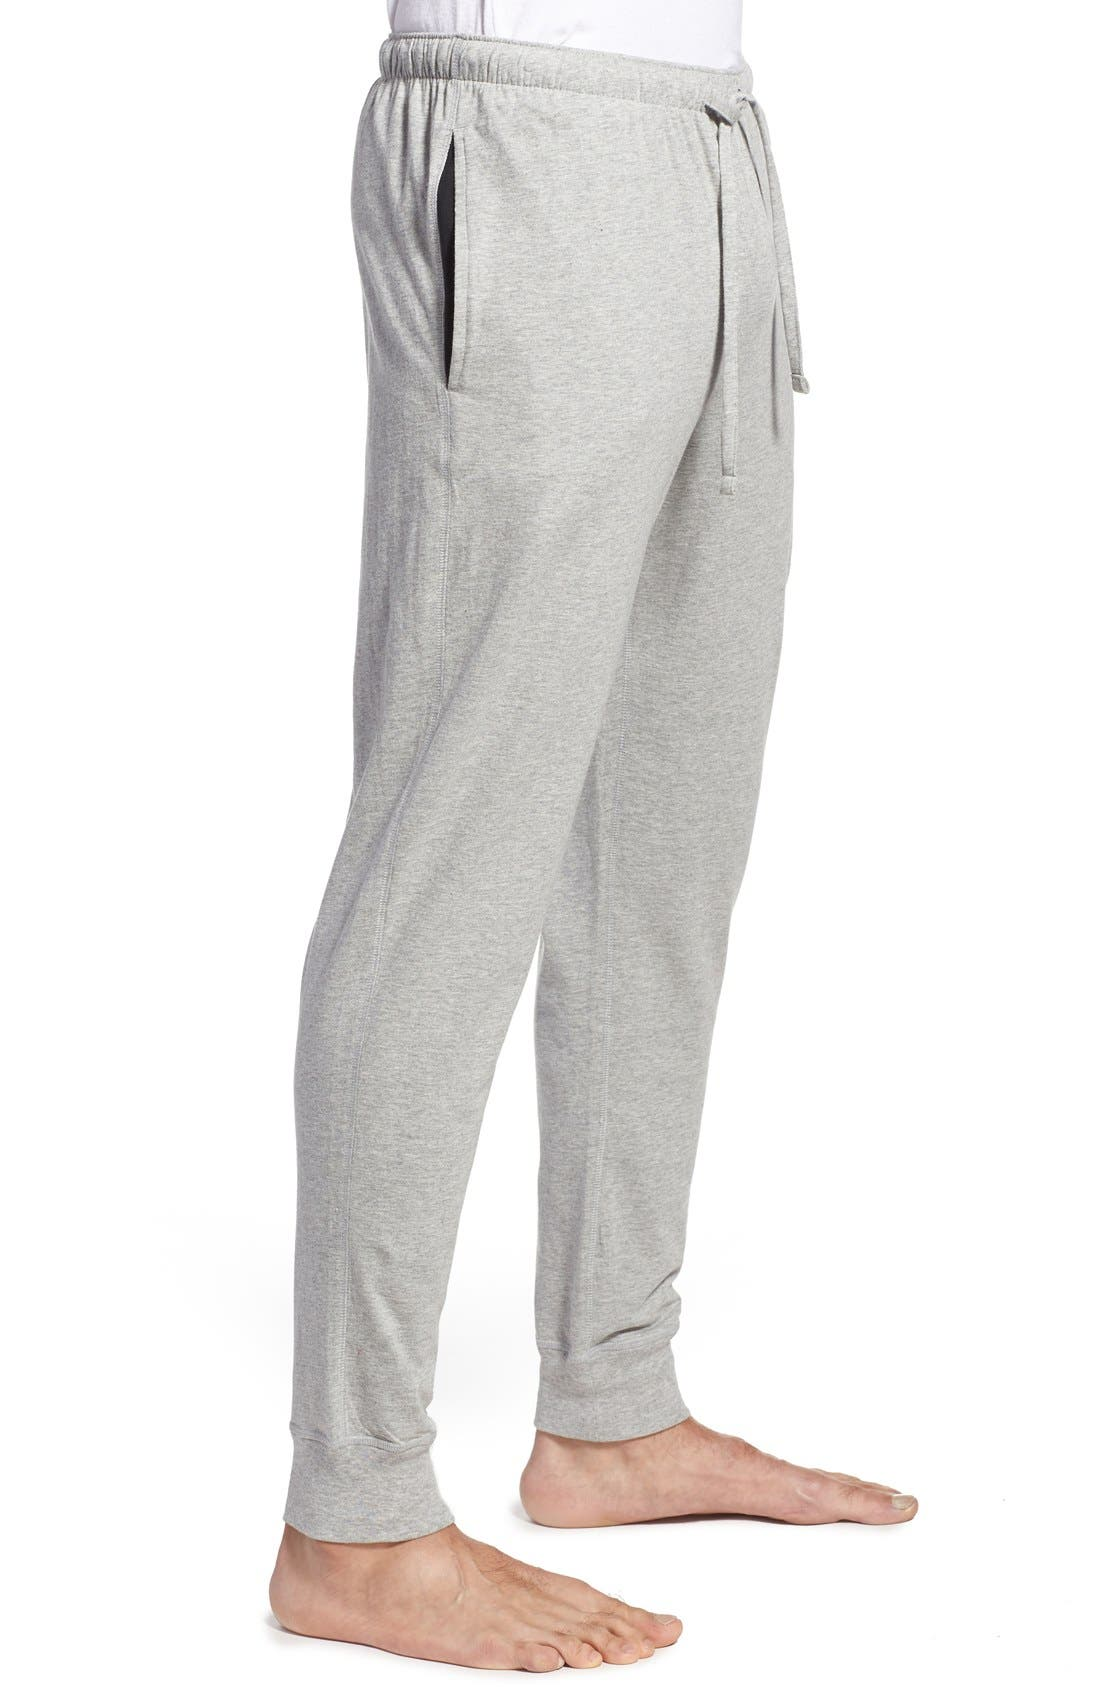 POLO RALPH LAUREN, Relaxed Fit Jogger Pants, Alternate thumbnail 2, color, ANDOVER HEATHER